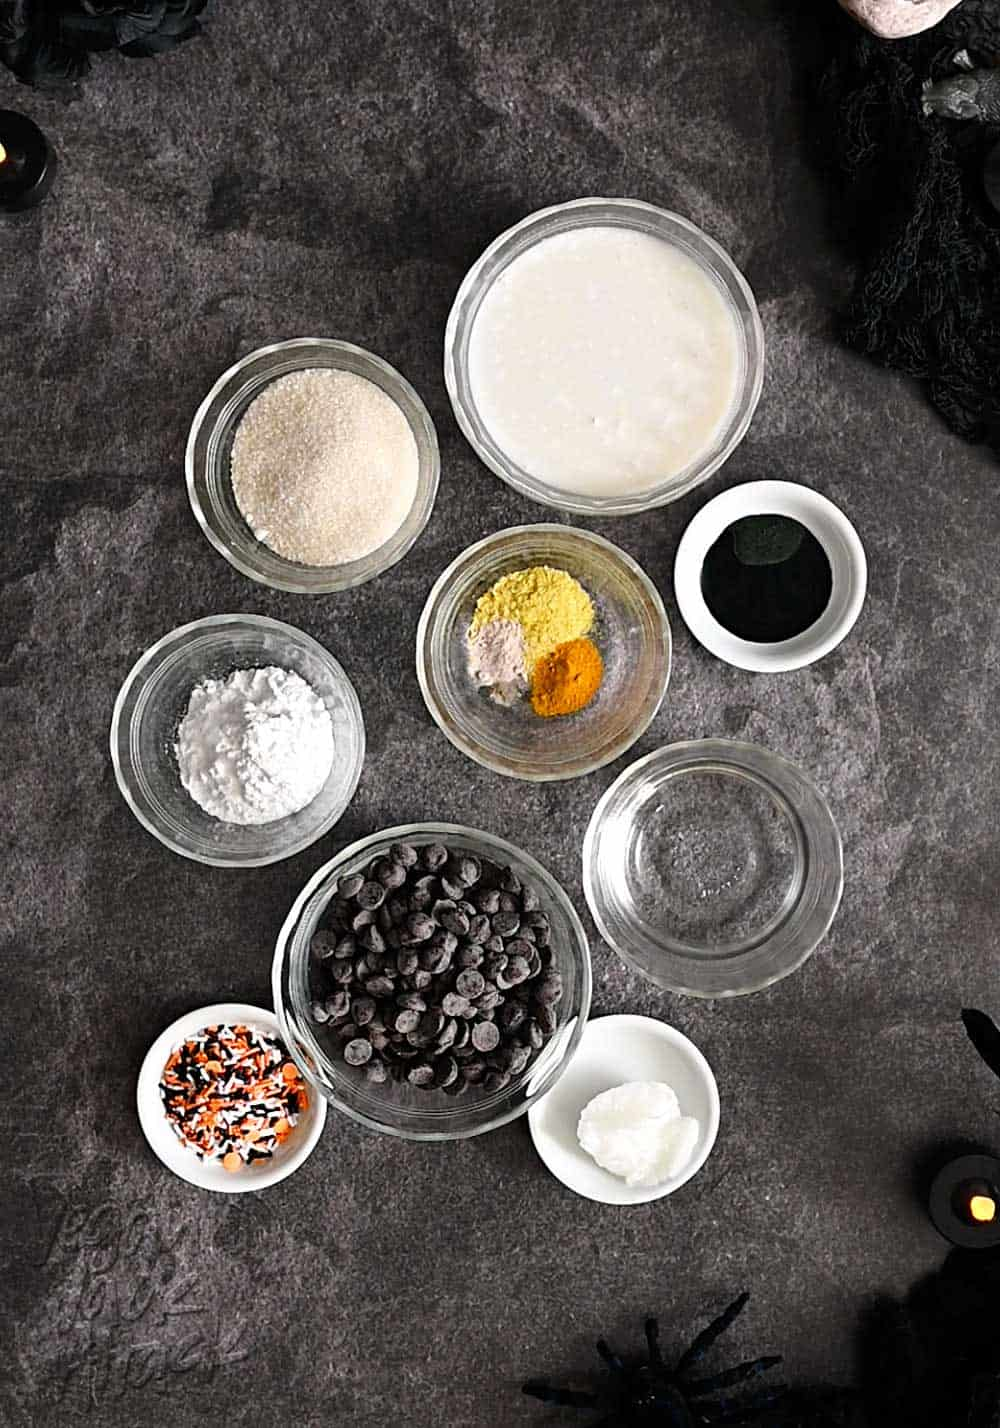 Ingredients for truffles in ramekins on black marble